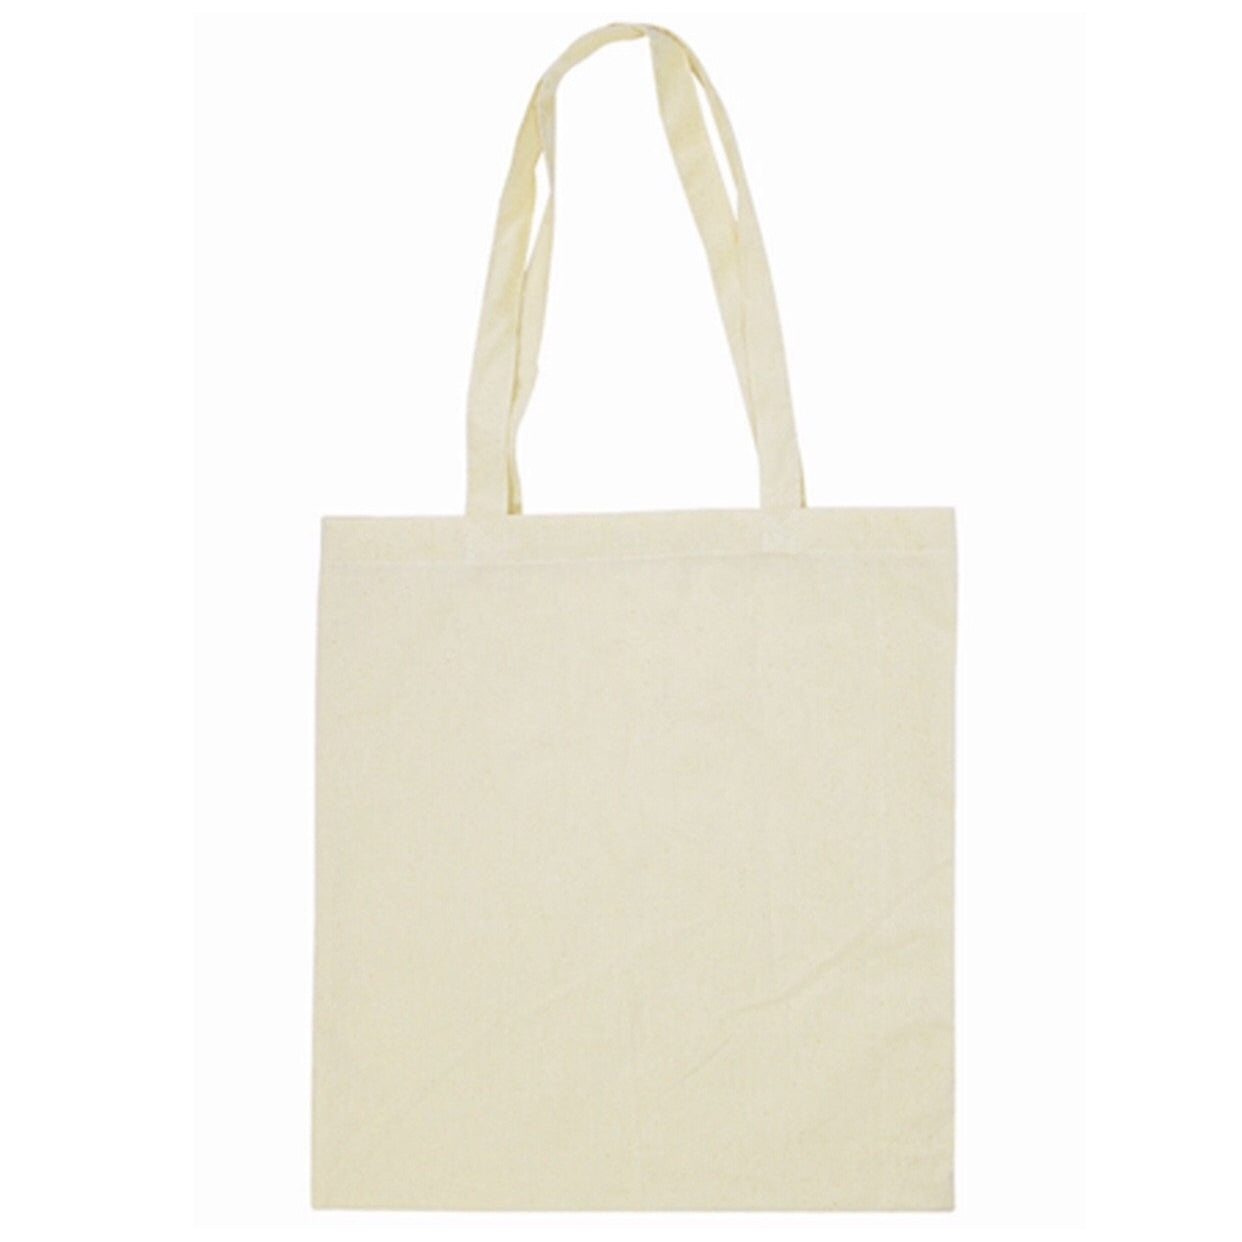 Reusable solid style shopping bag